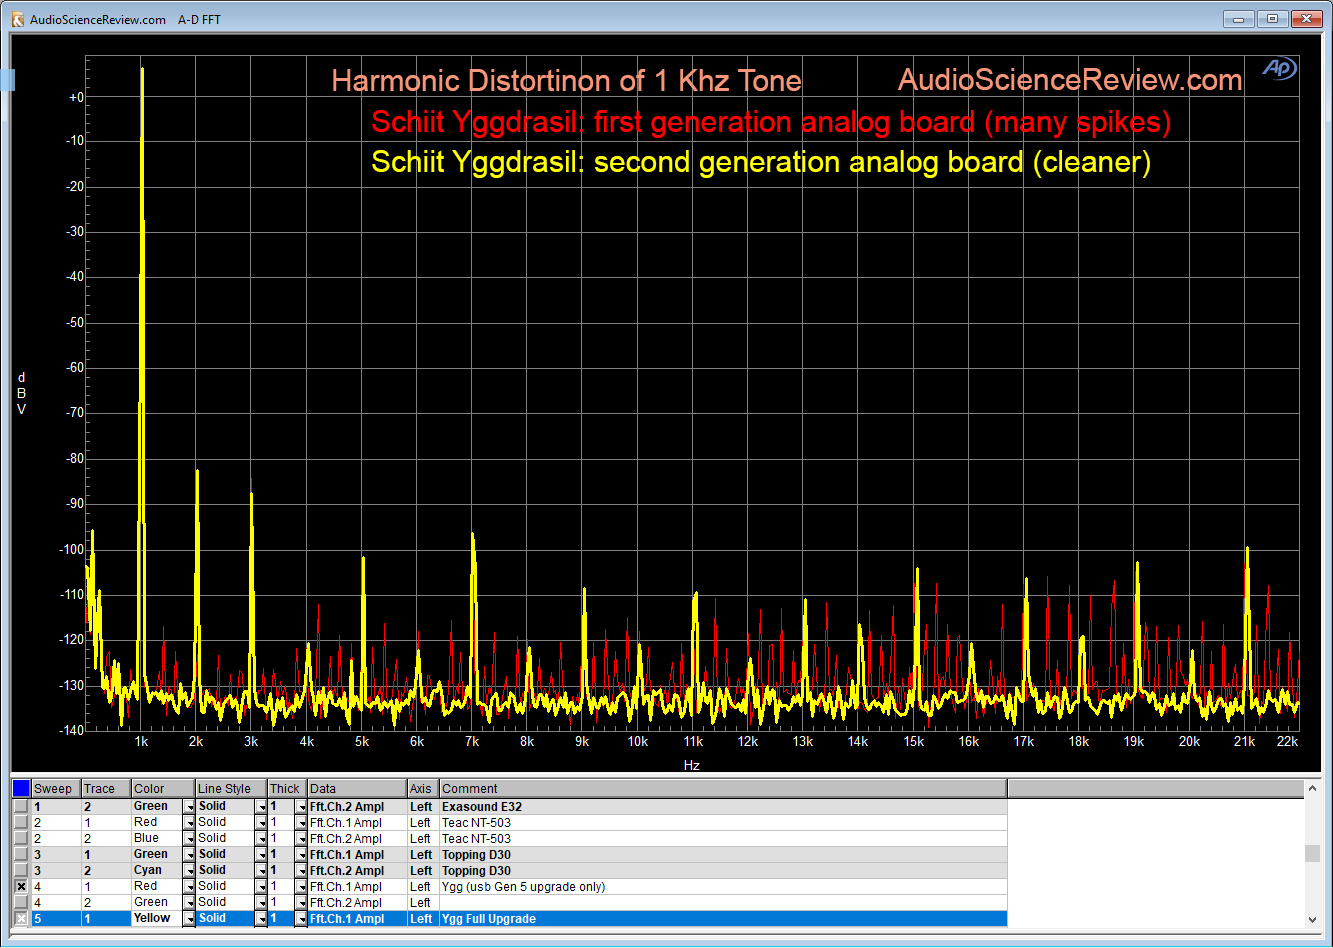 Schiit Yggdrasil DAC Harmonic Distortion Measurement.png